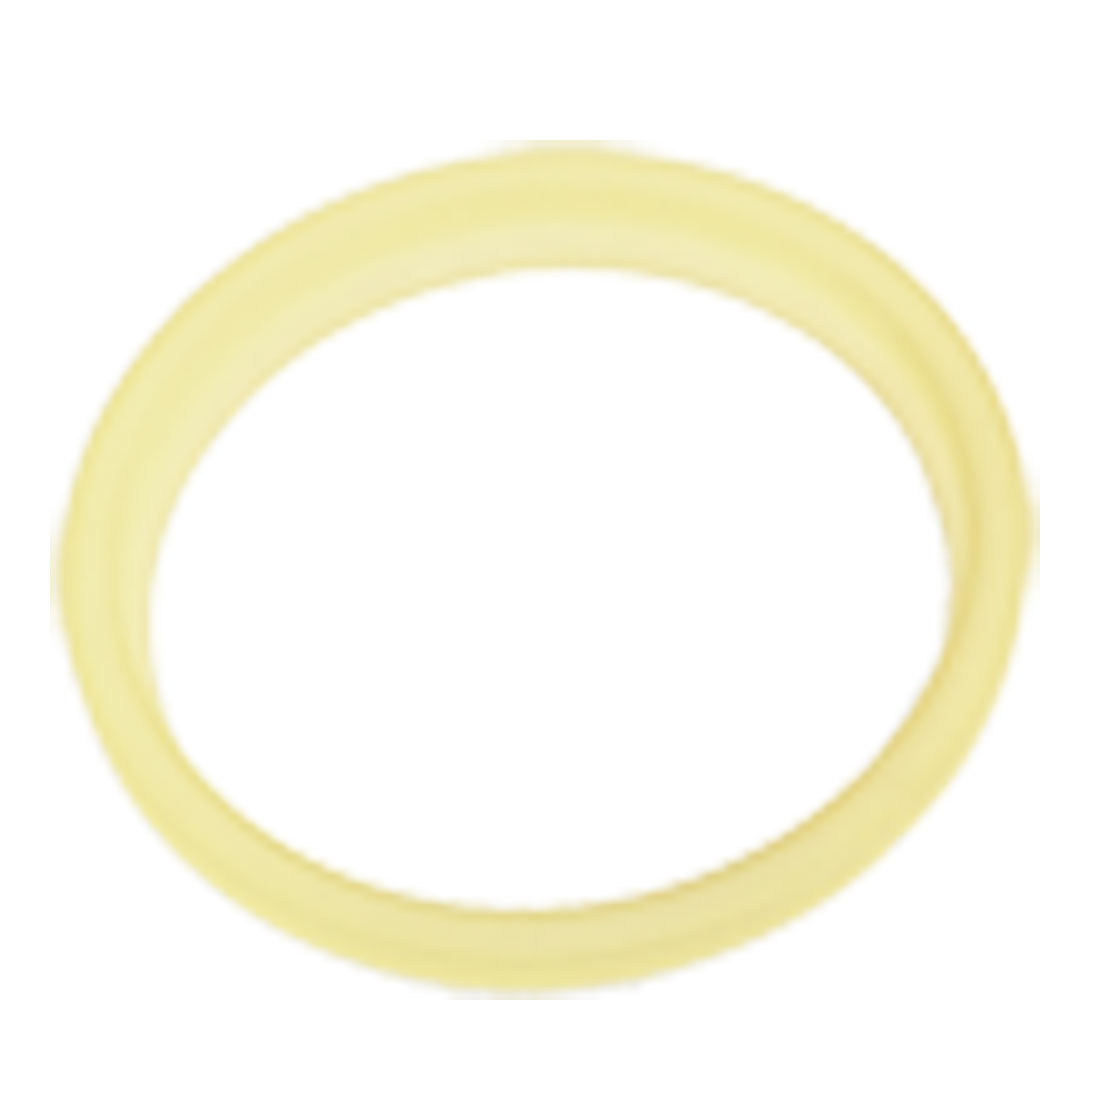 Cylinder 85 x 99 x 6 x 12mm Polyurethane J Type Ring Dust Wiper Seal